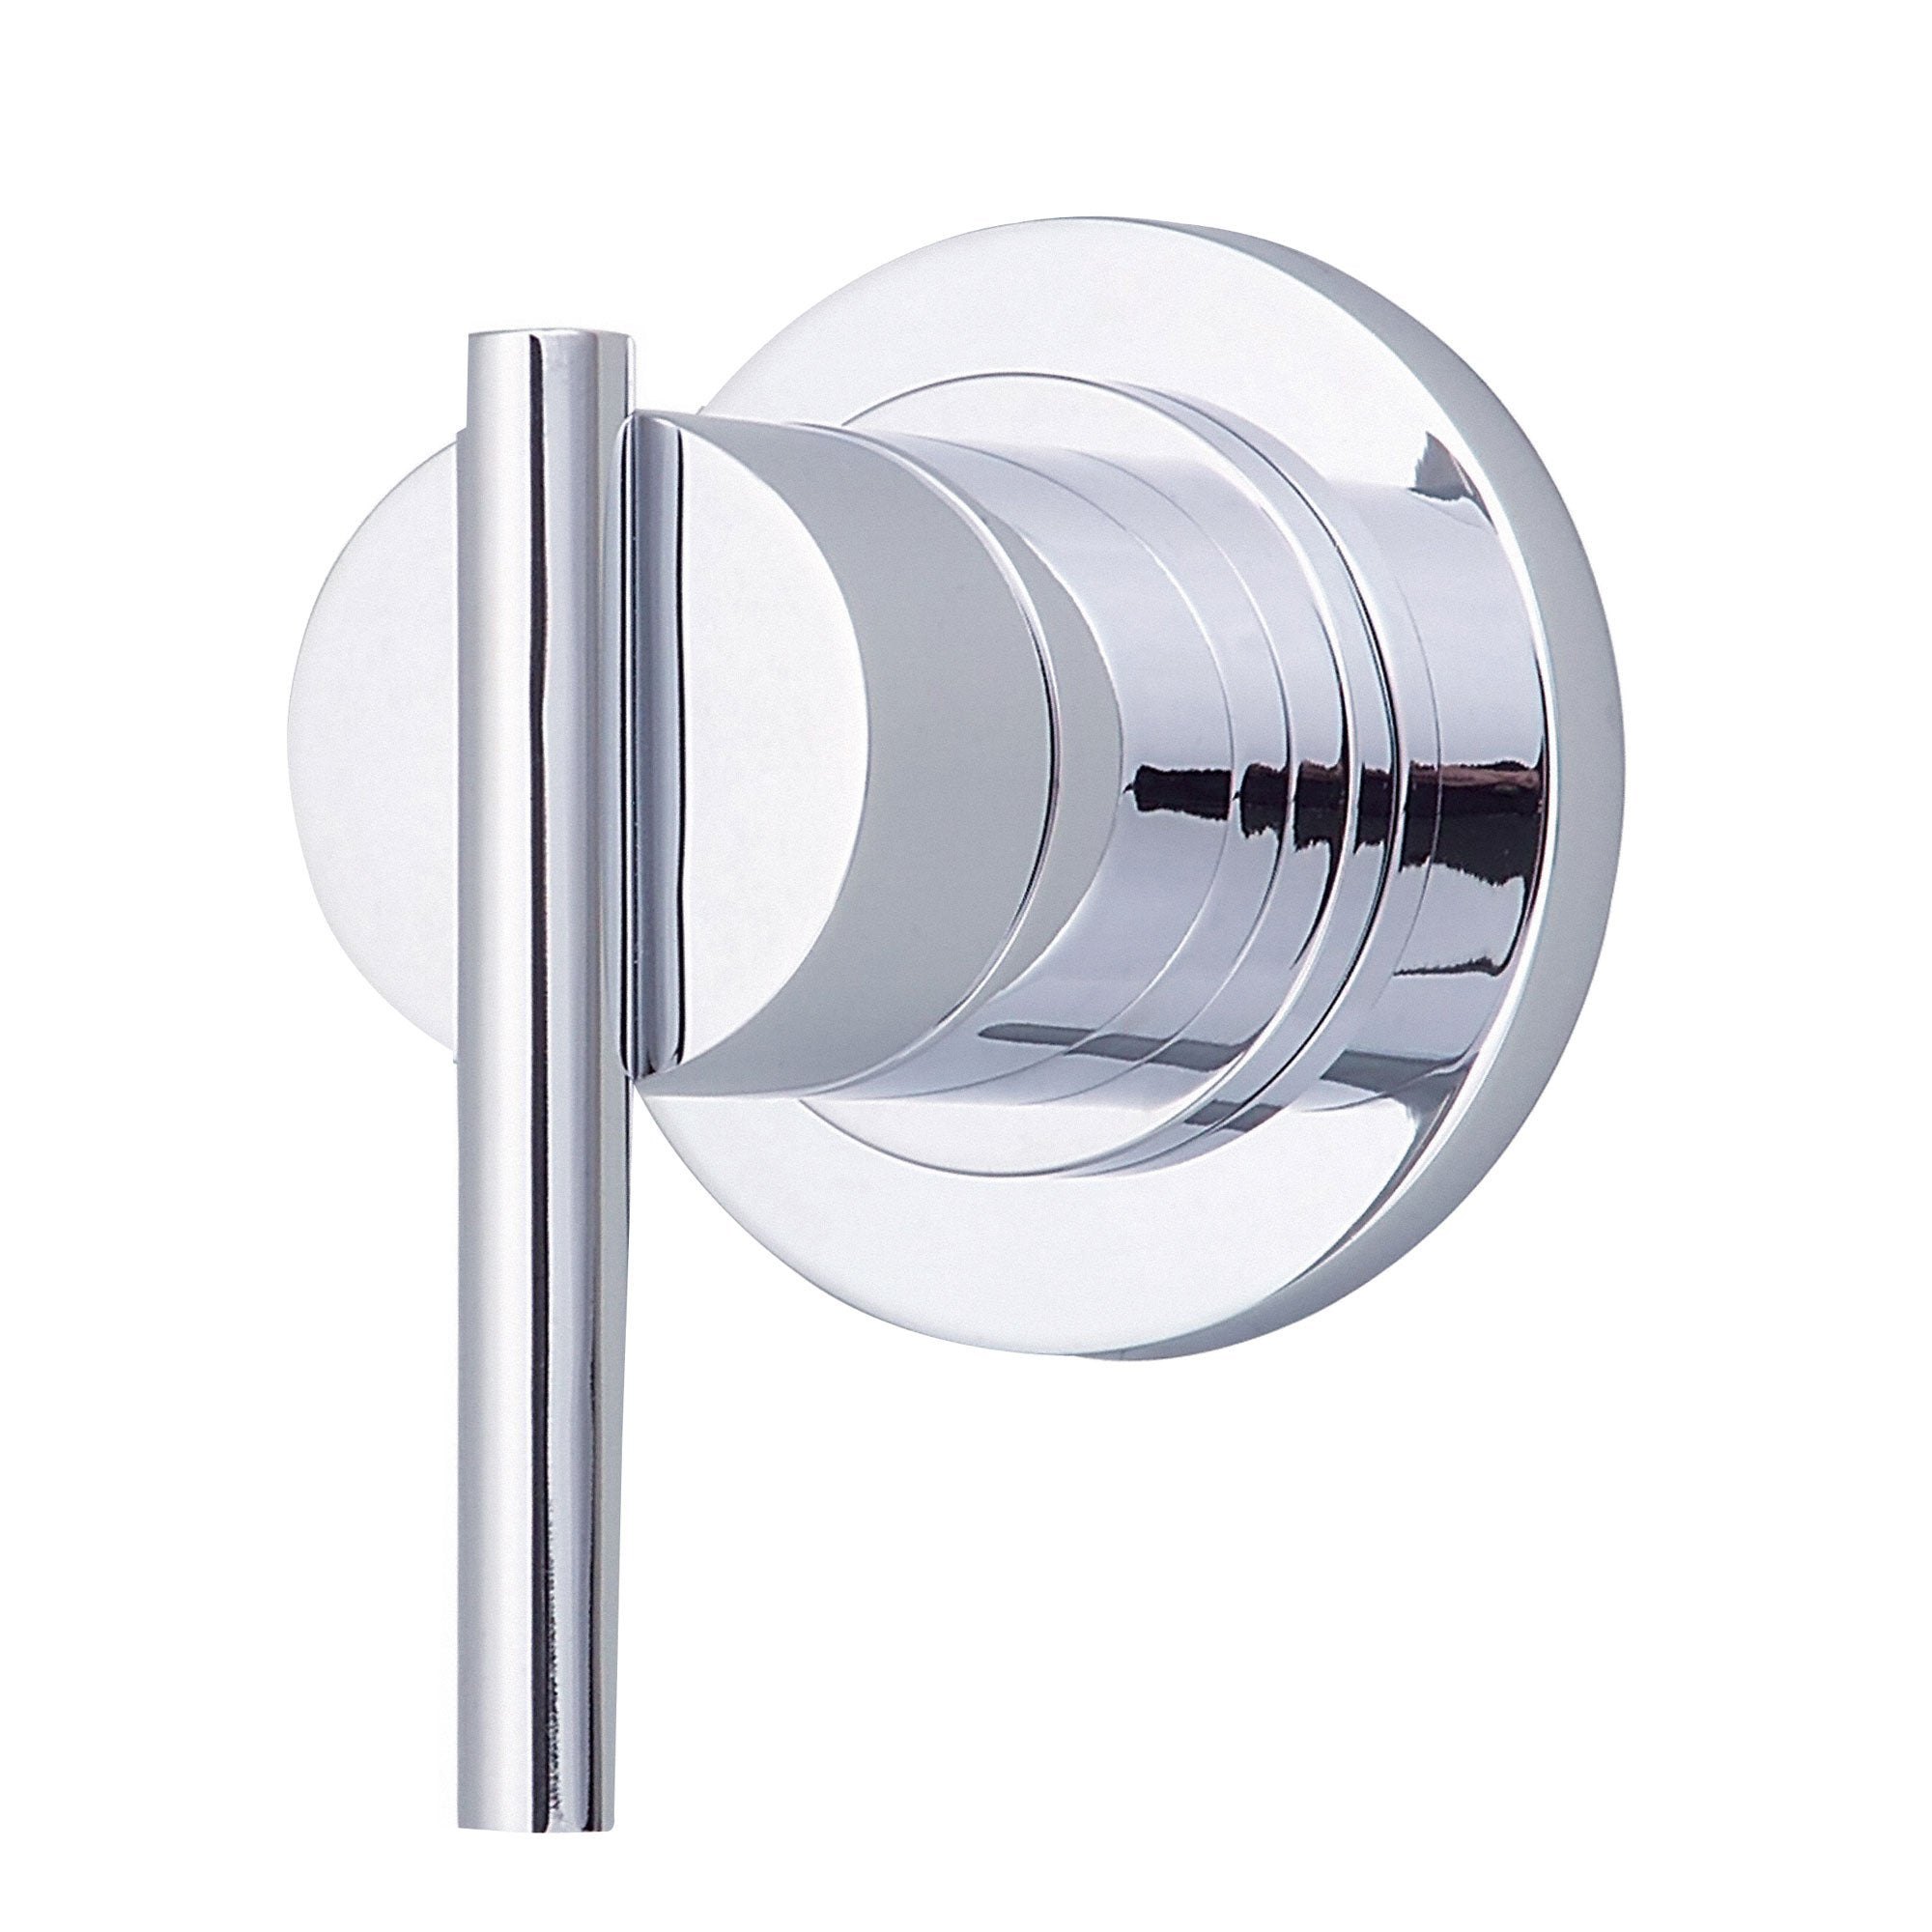 Danze Parma Chrome Single Handle Volume Control 4-Port Shower Diverter INCLUDES Rough-in Valve